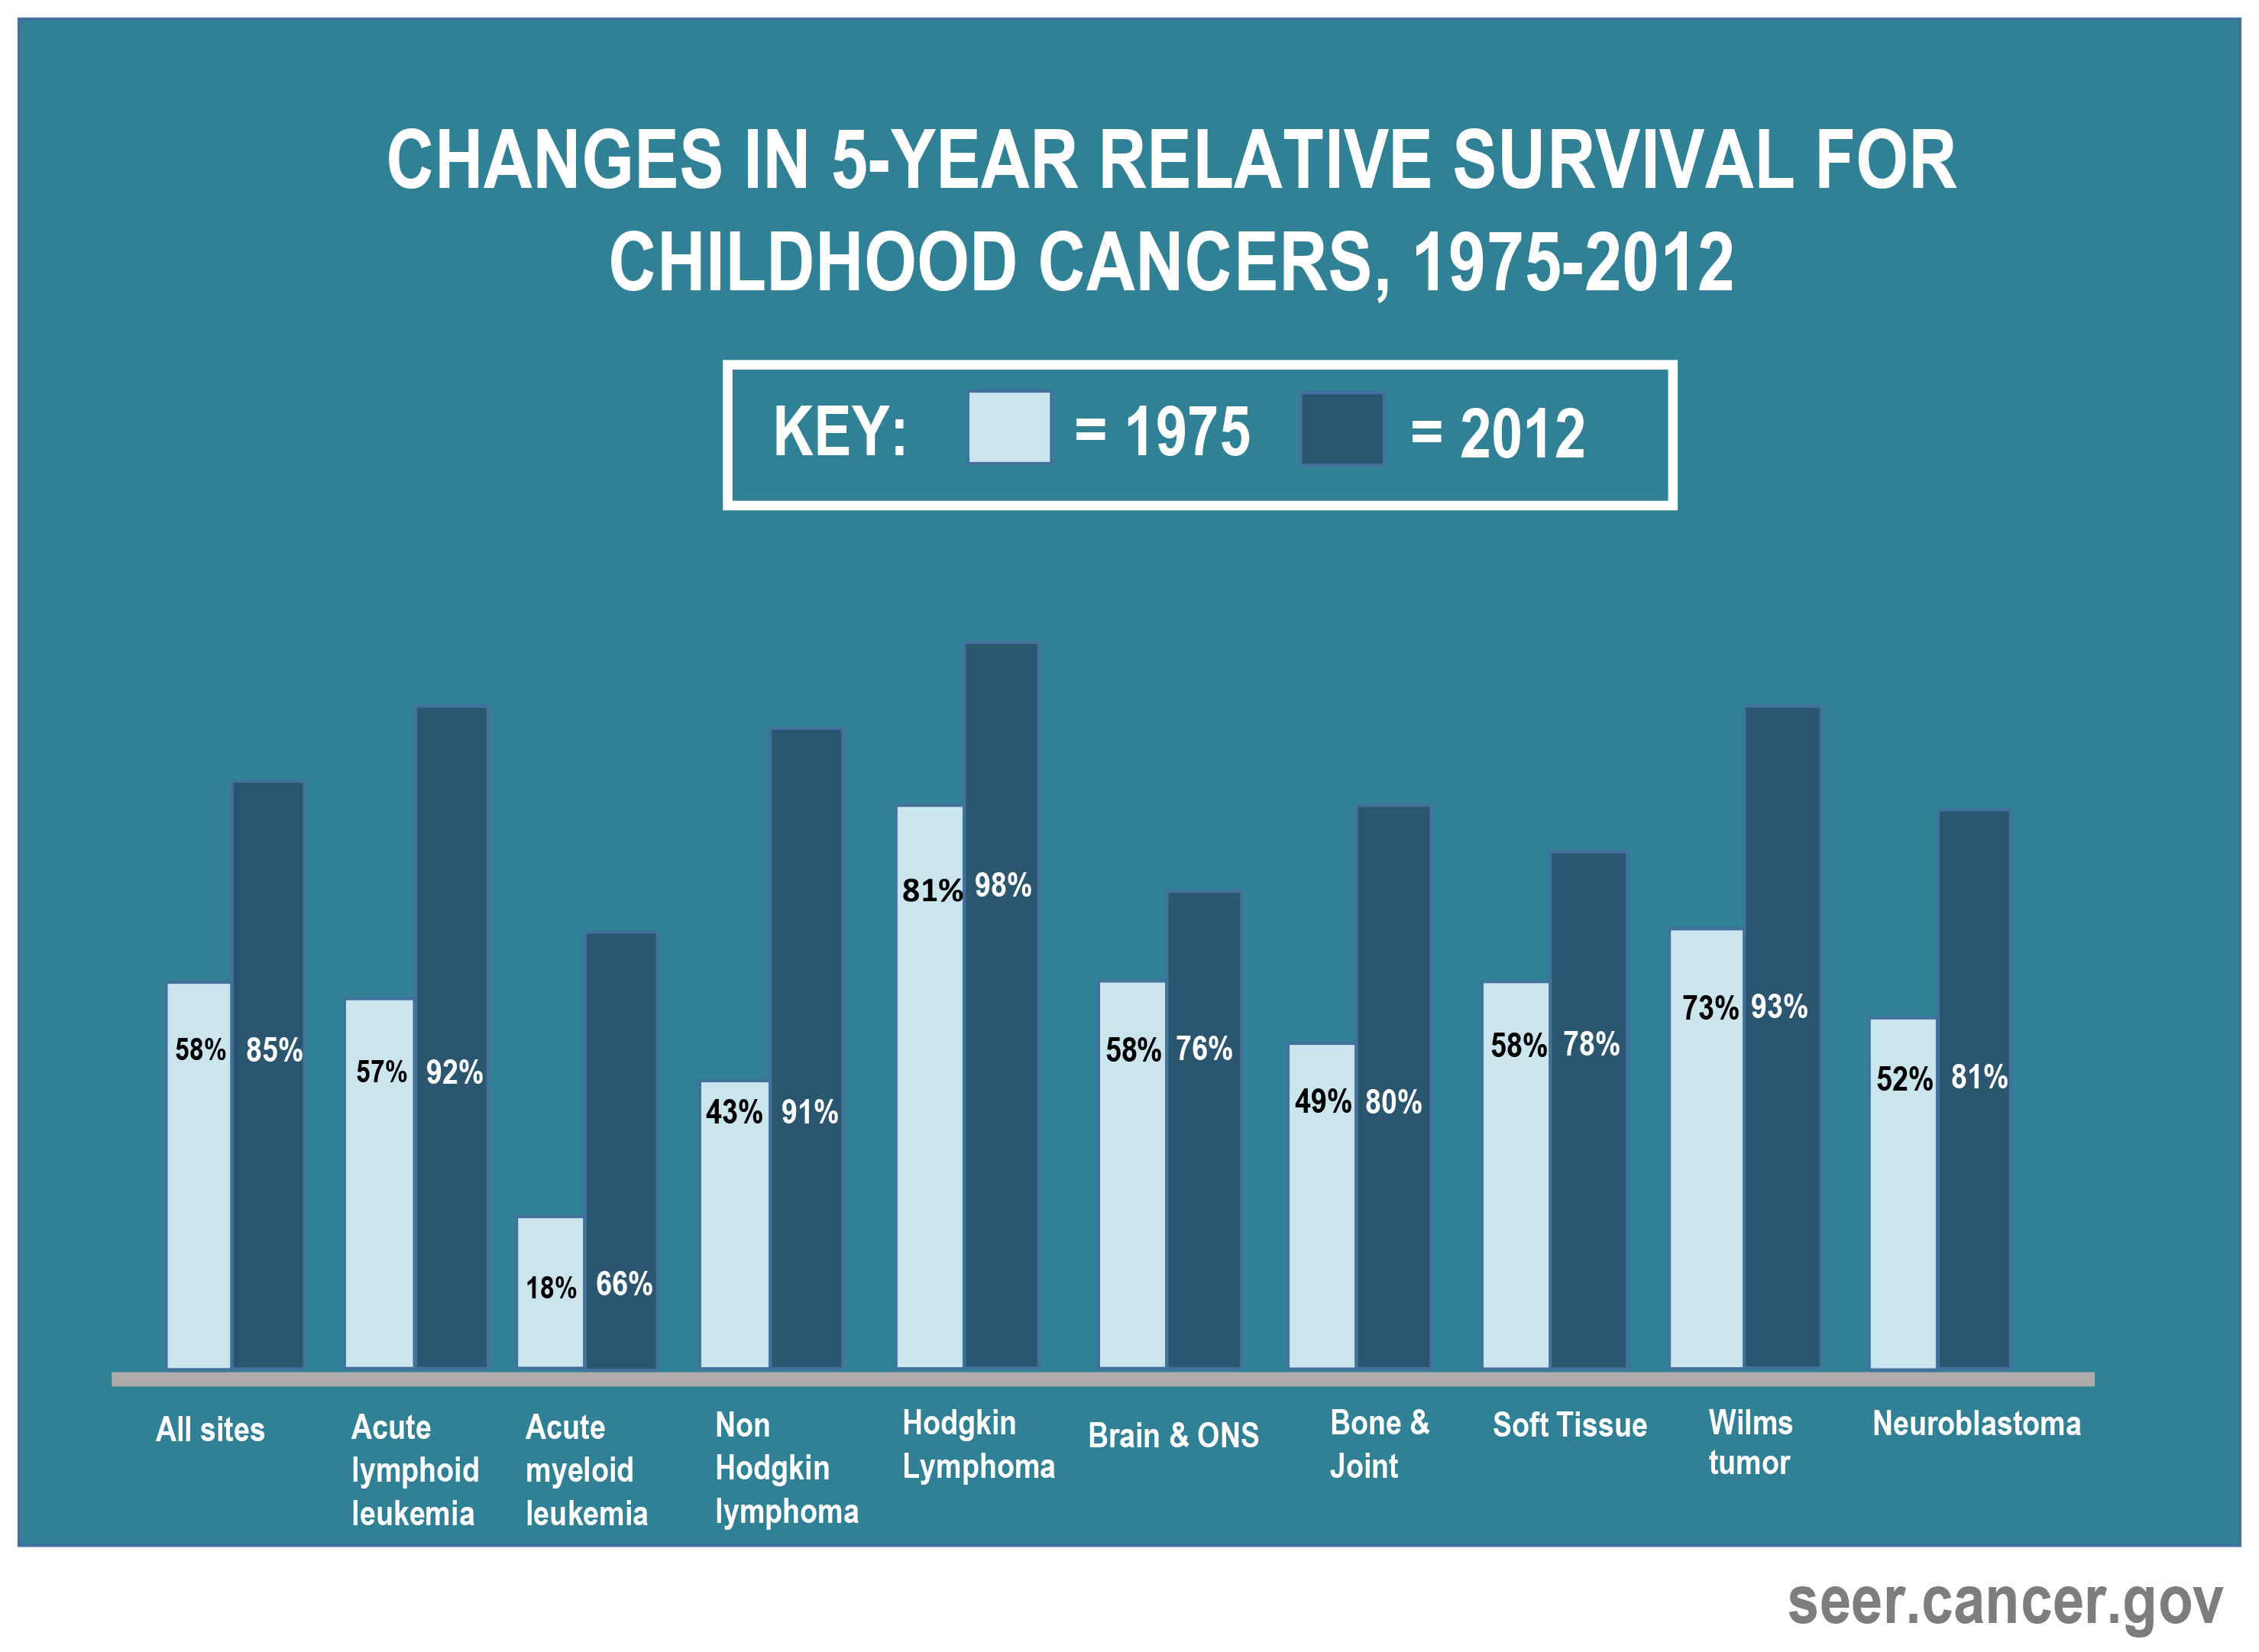 Change in 5-year relative survival for childhood cancers 1975 to 2012